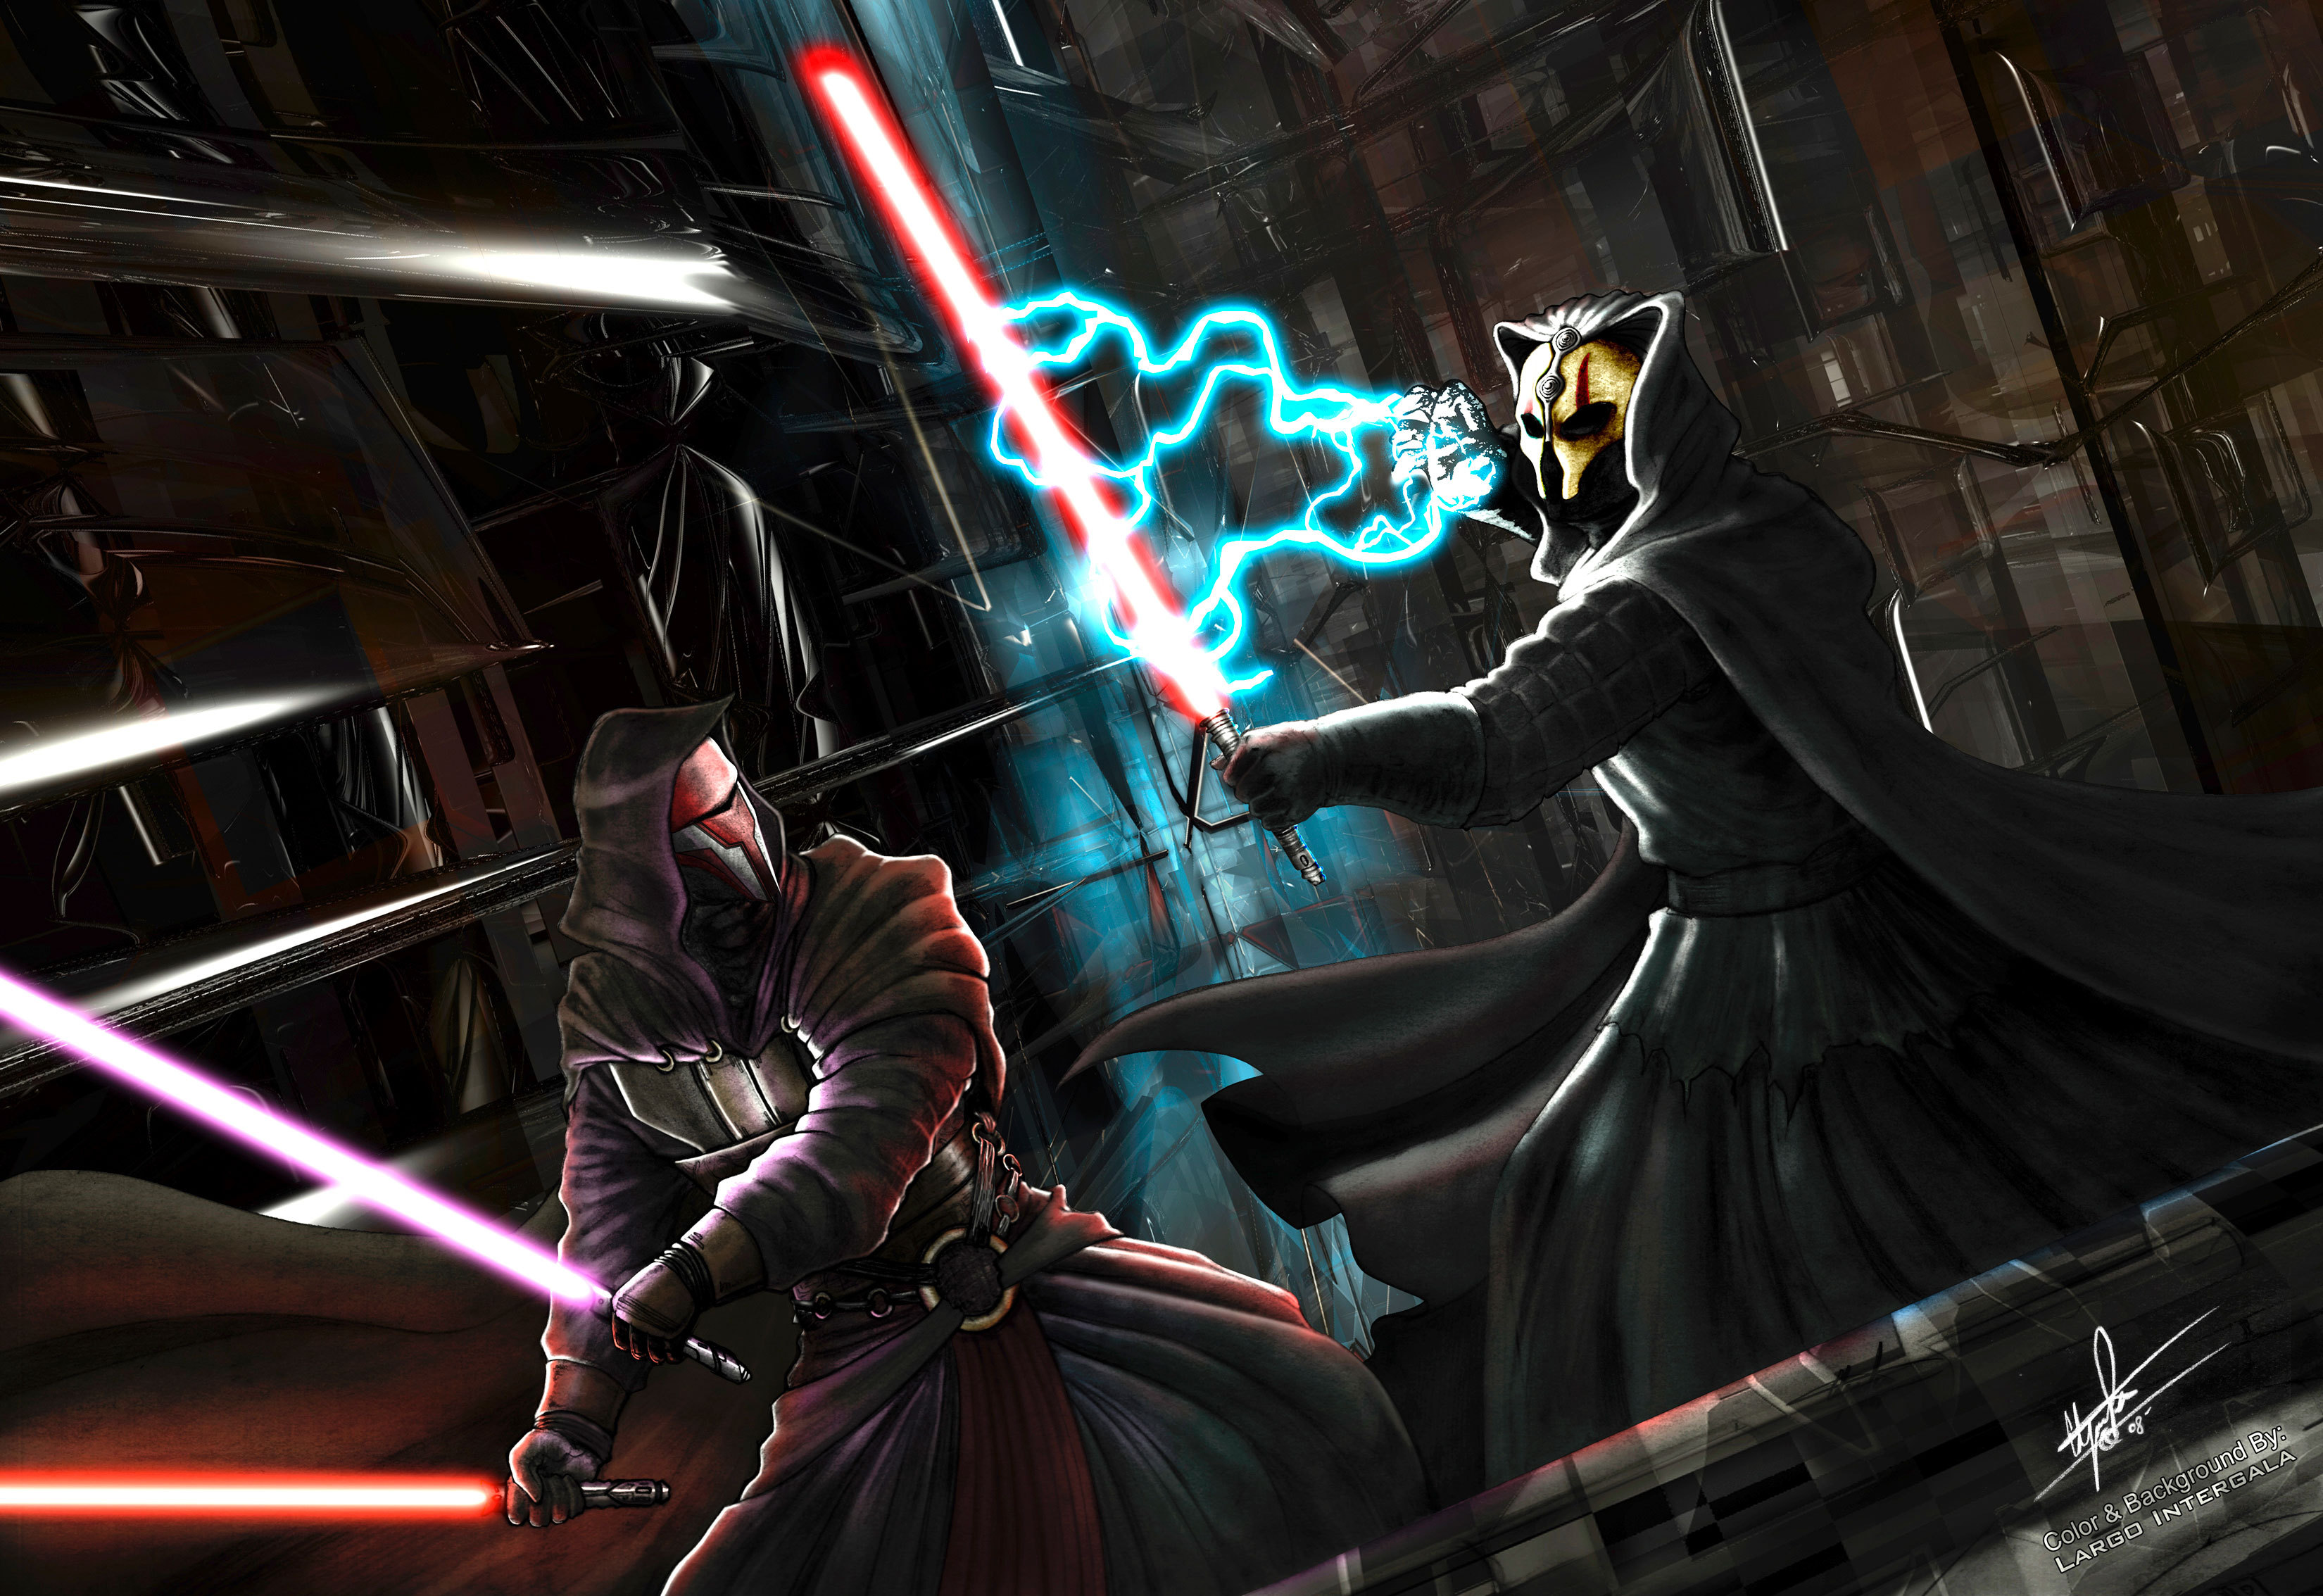 knights of the old republic darth vs revan ZmduZW2UmZqaraWkpJRoaGVlrWdna2w